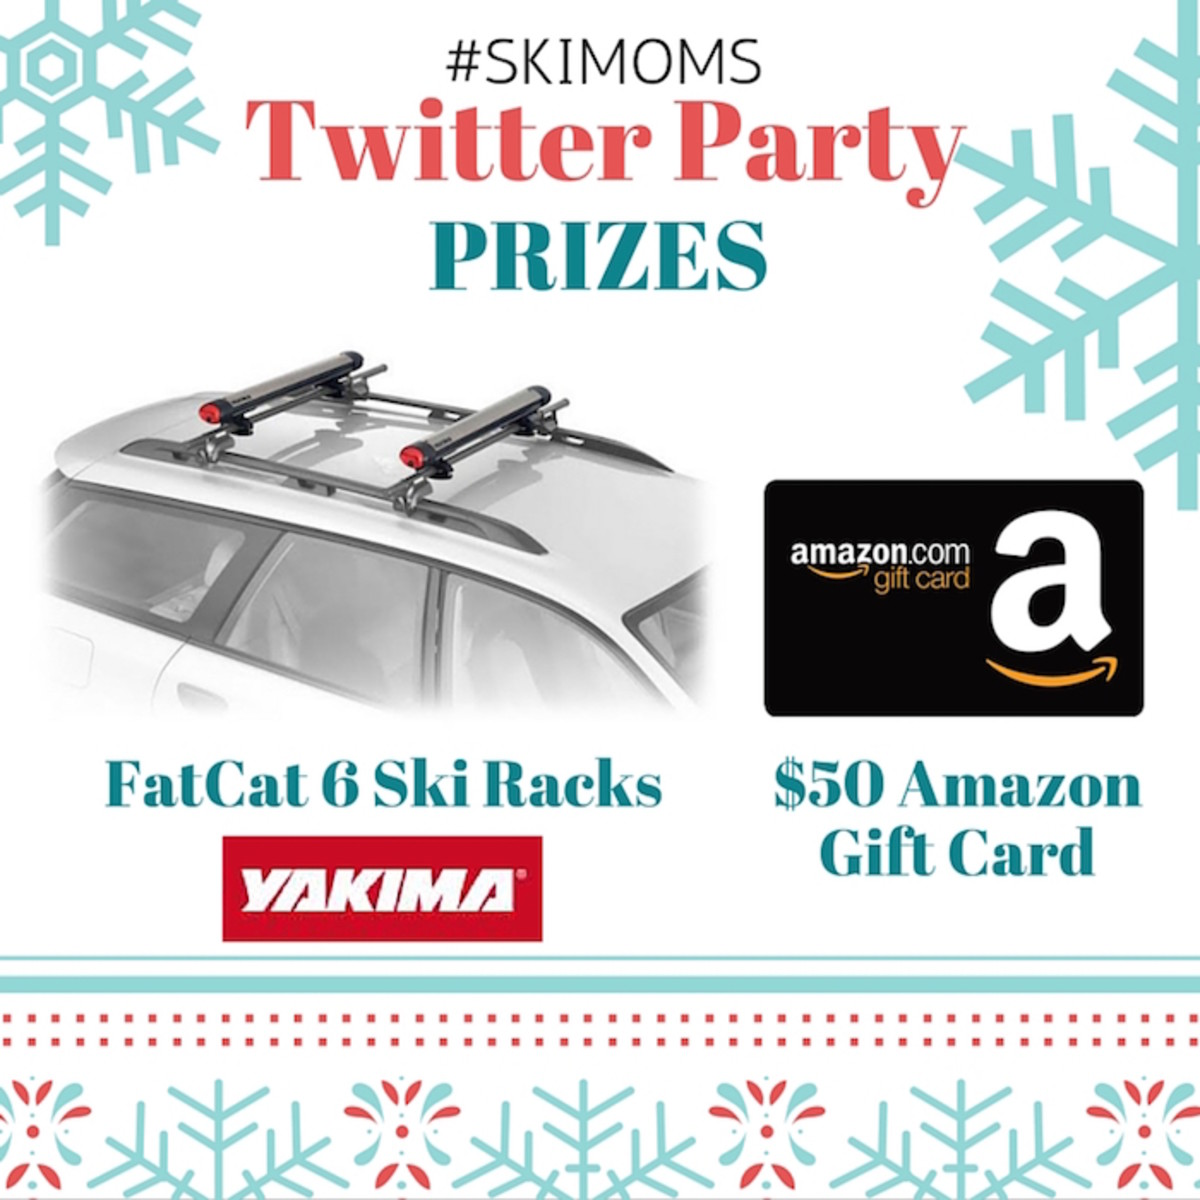 #SkiMoms Twitter Party Prizes- January 5th